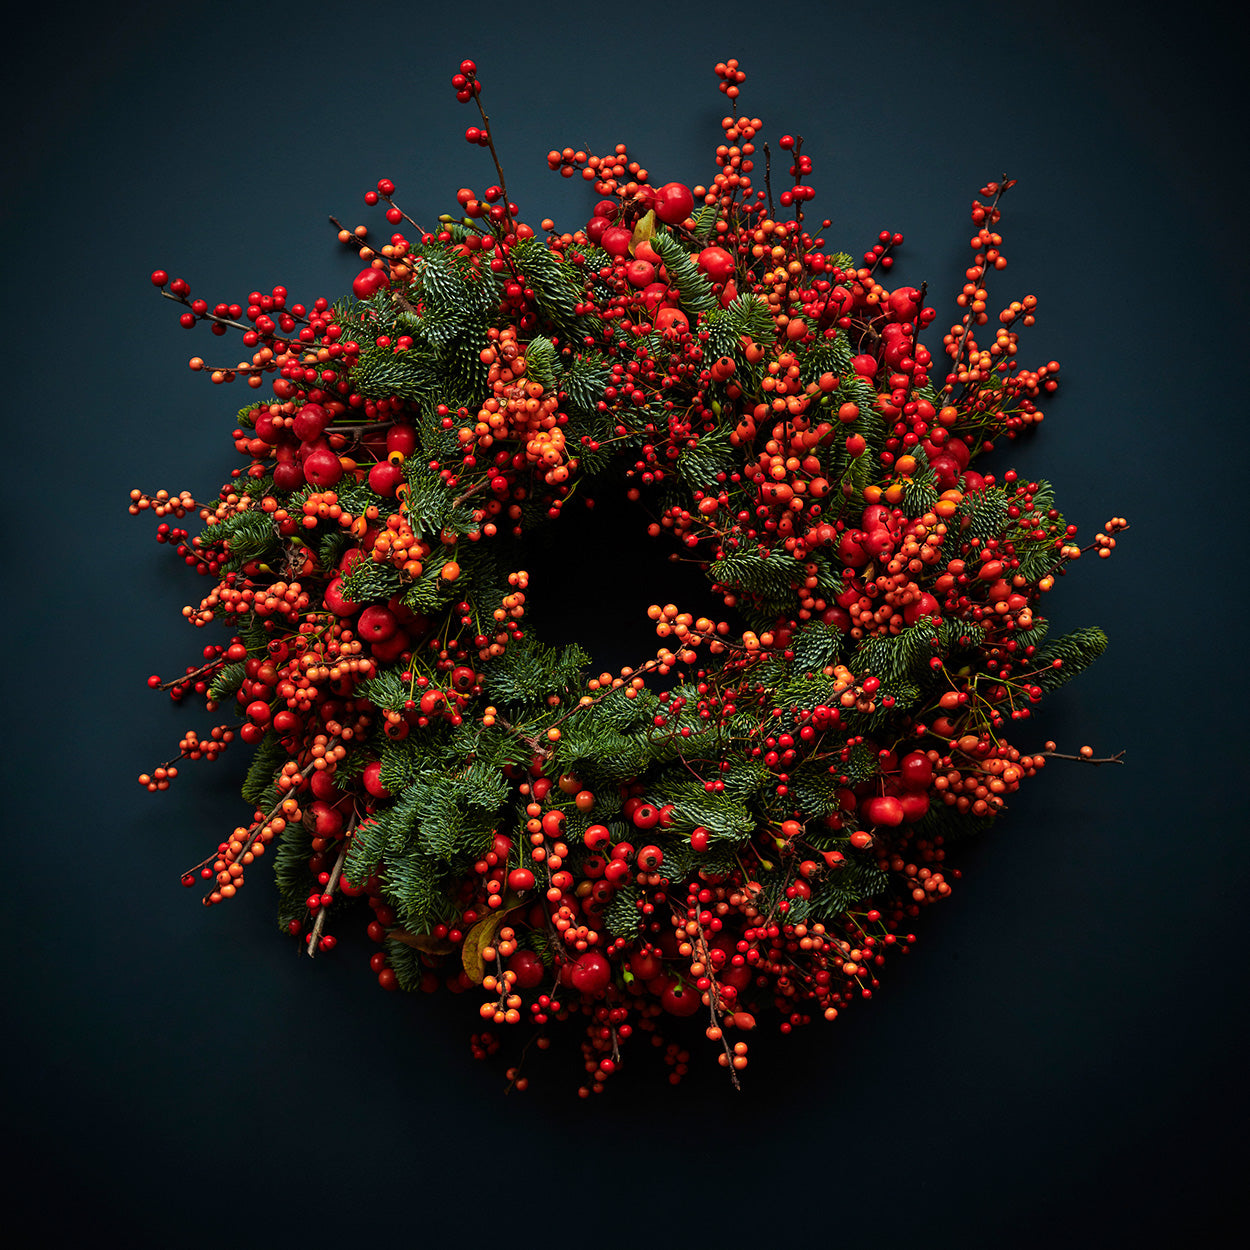 Derwent wreath